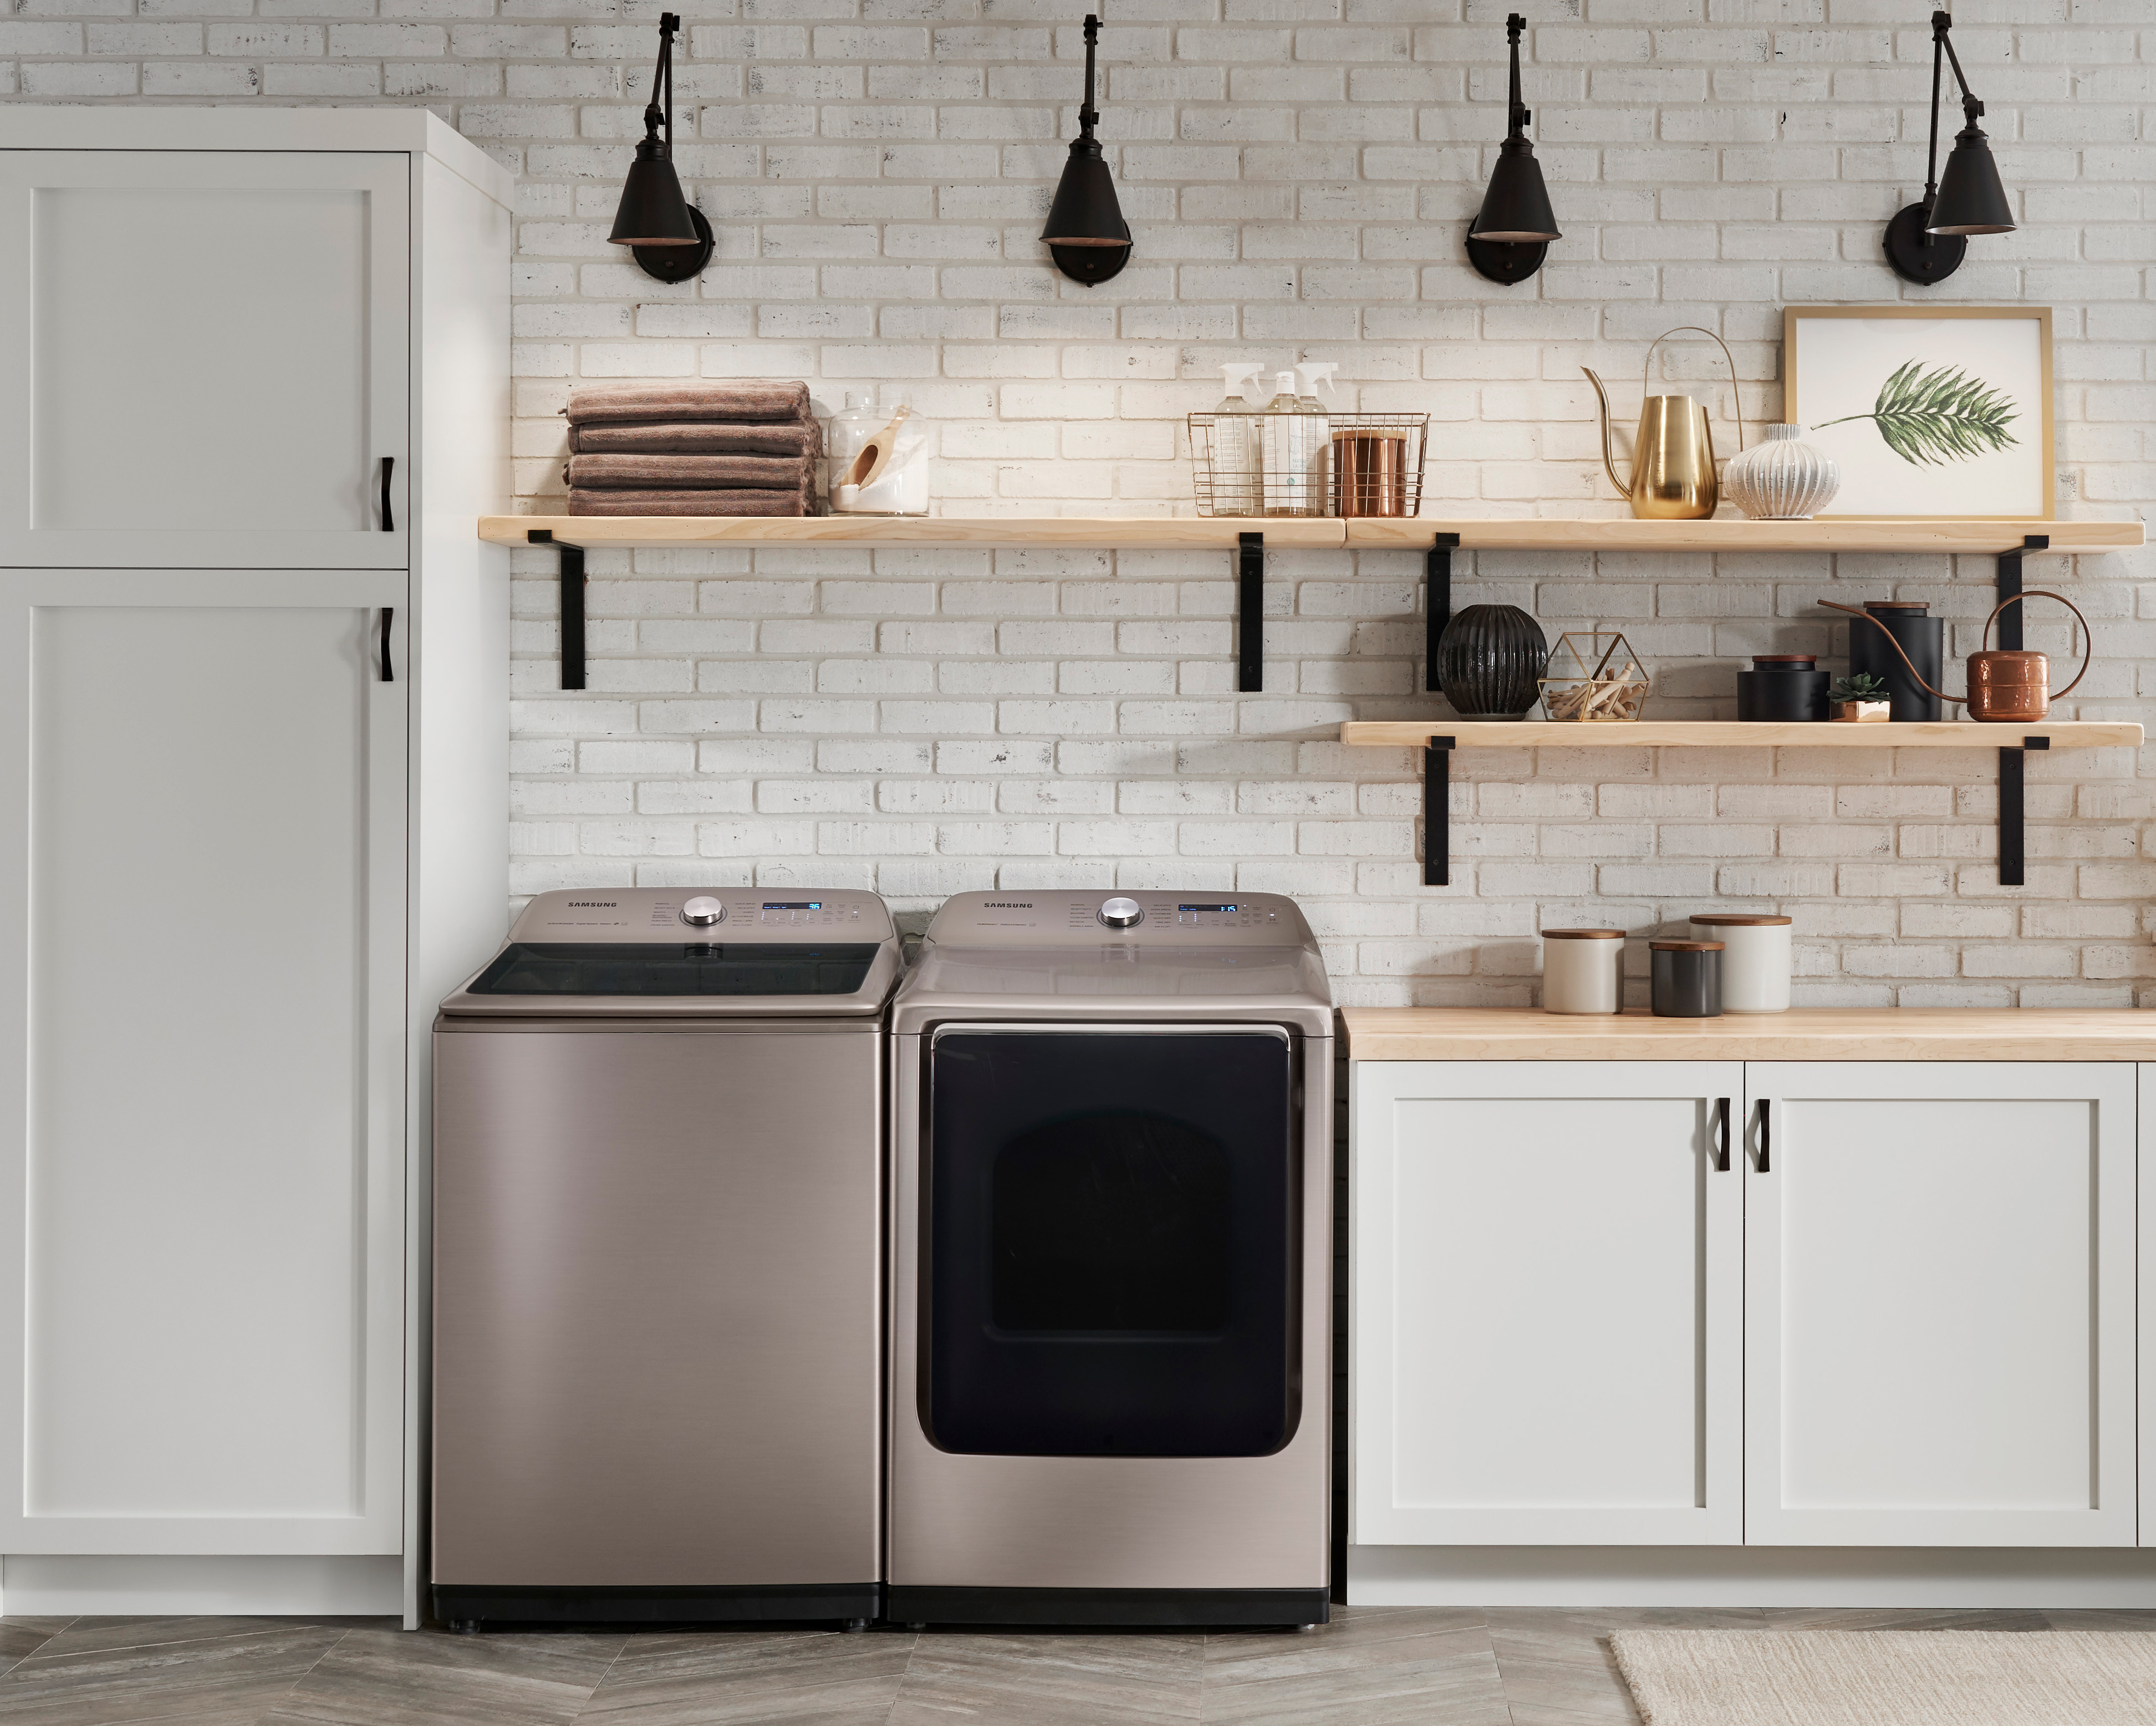 Samsung Brings the Elegance of Champagne to Top Load Laundry